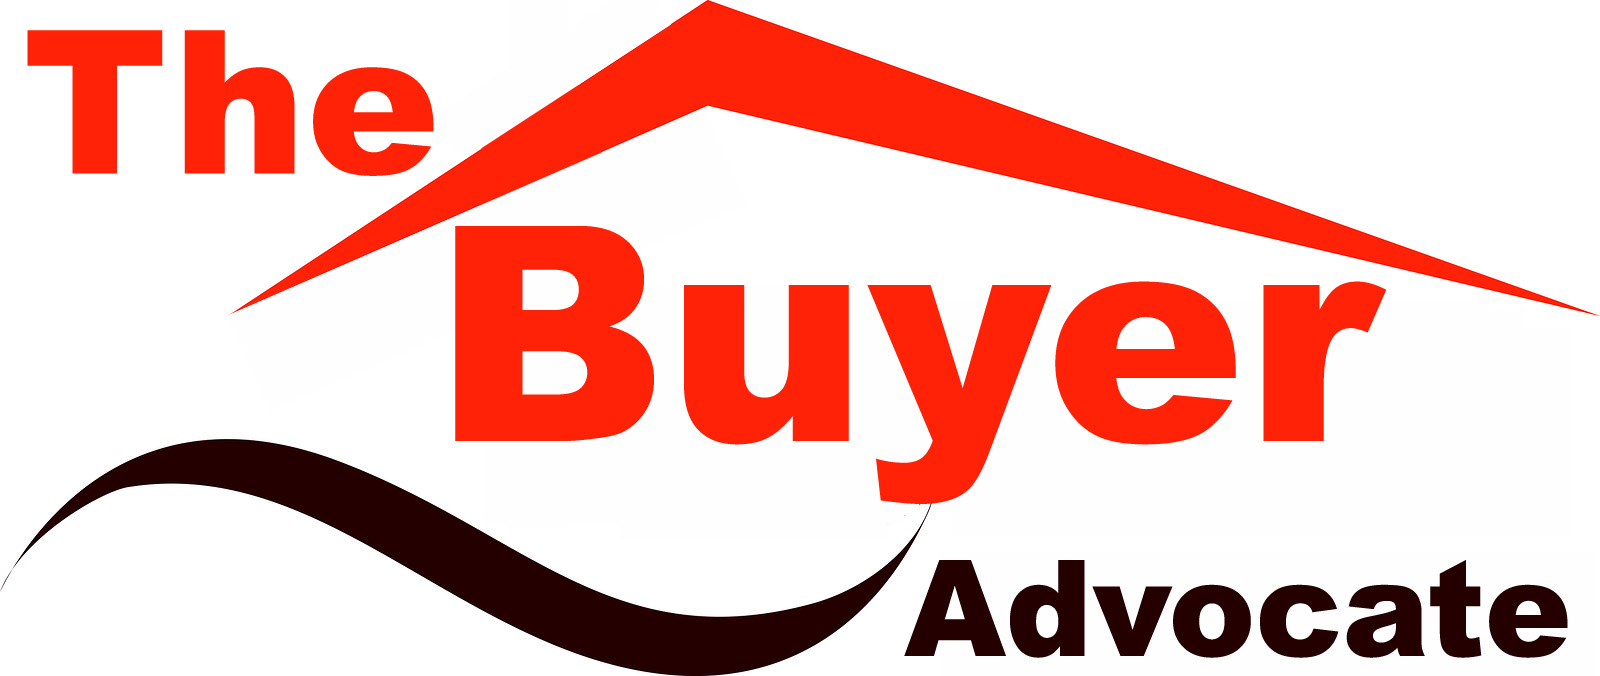 SOCAL Buyer Advocate Logo